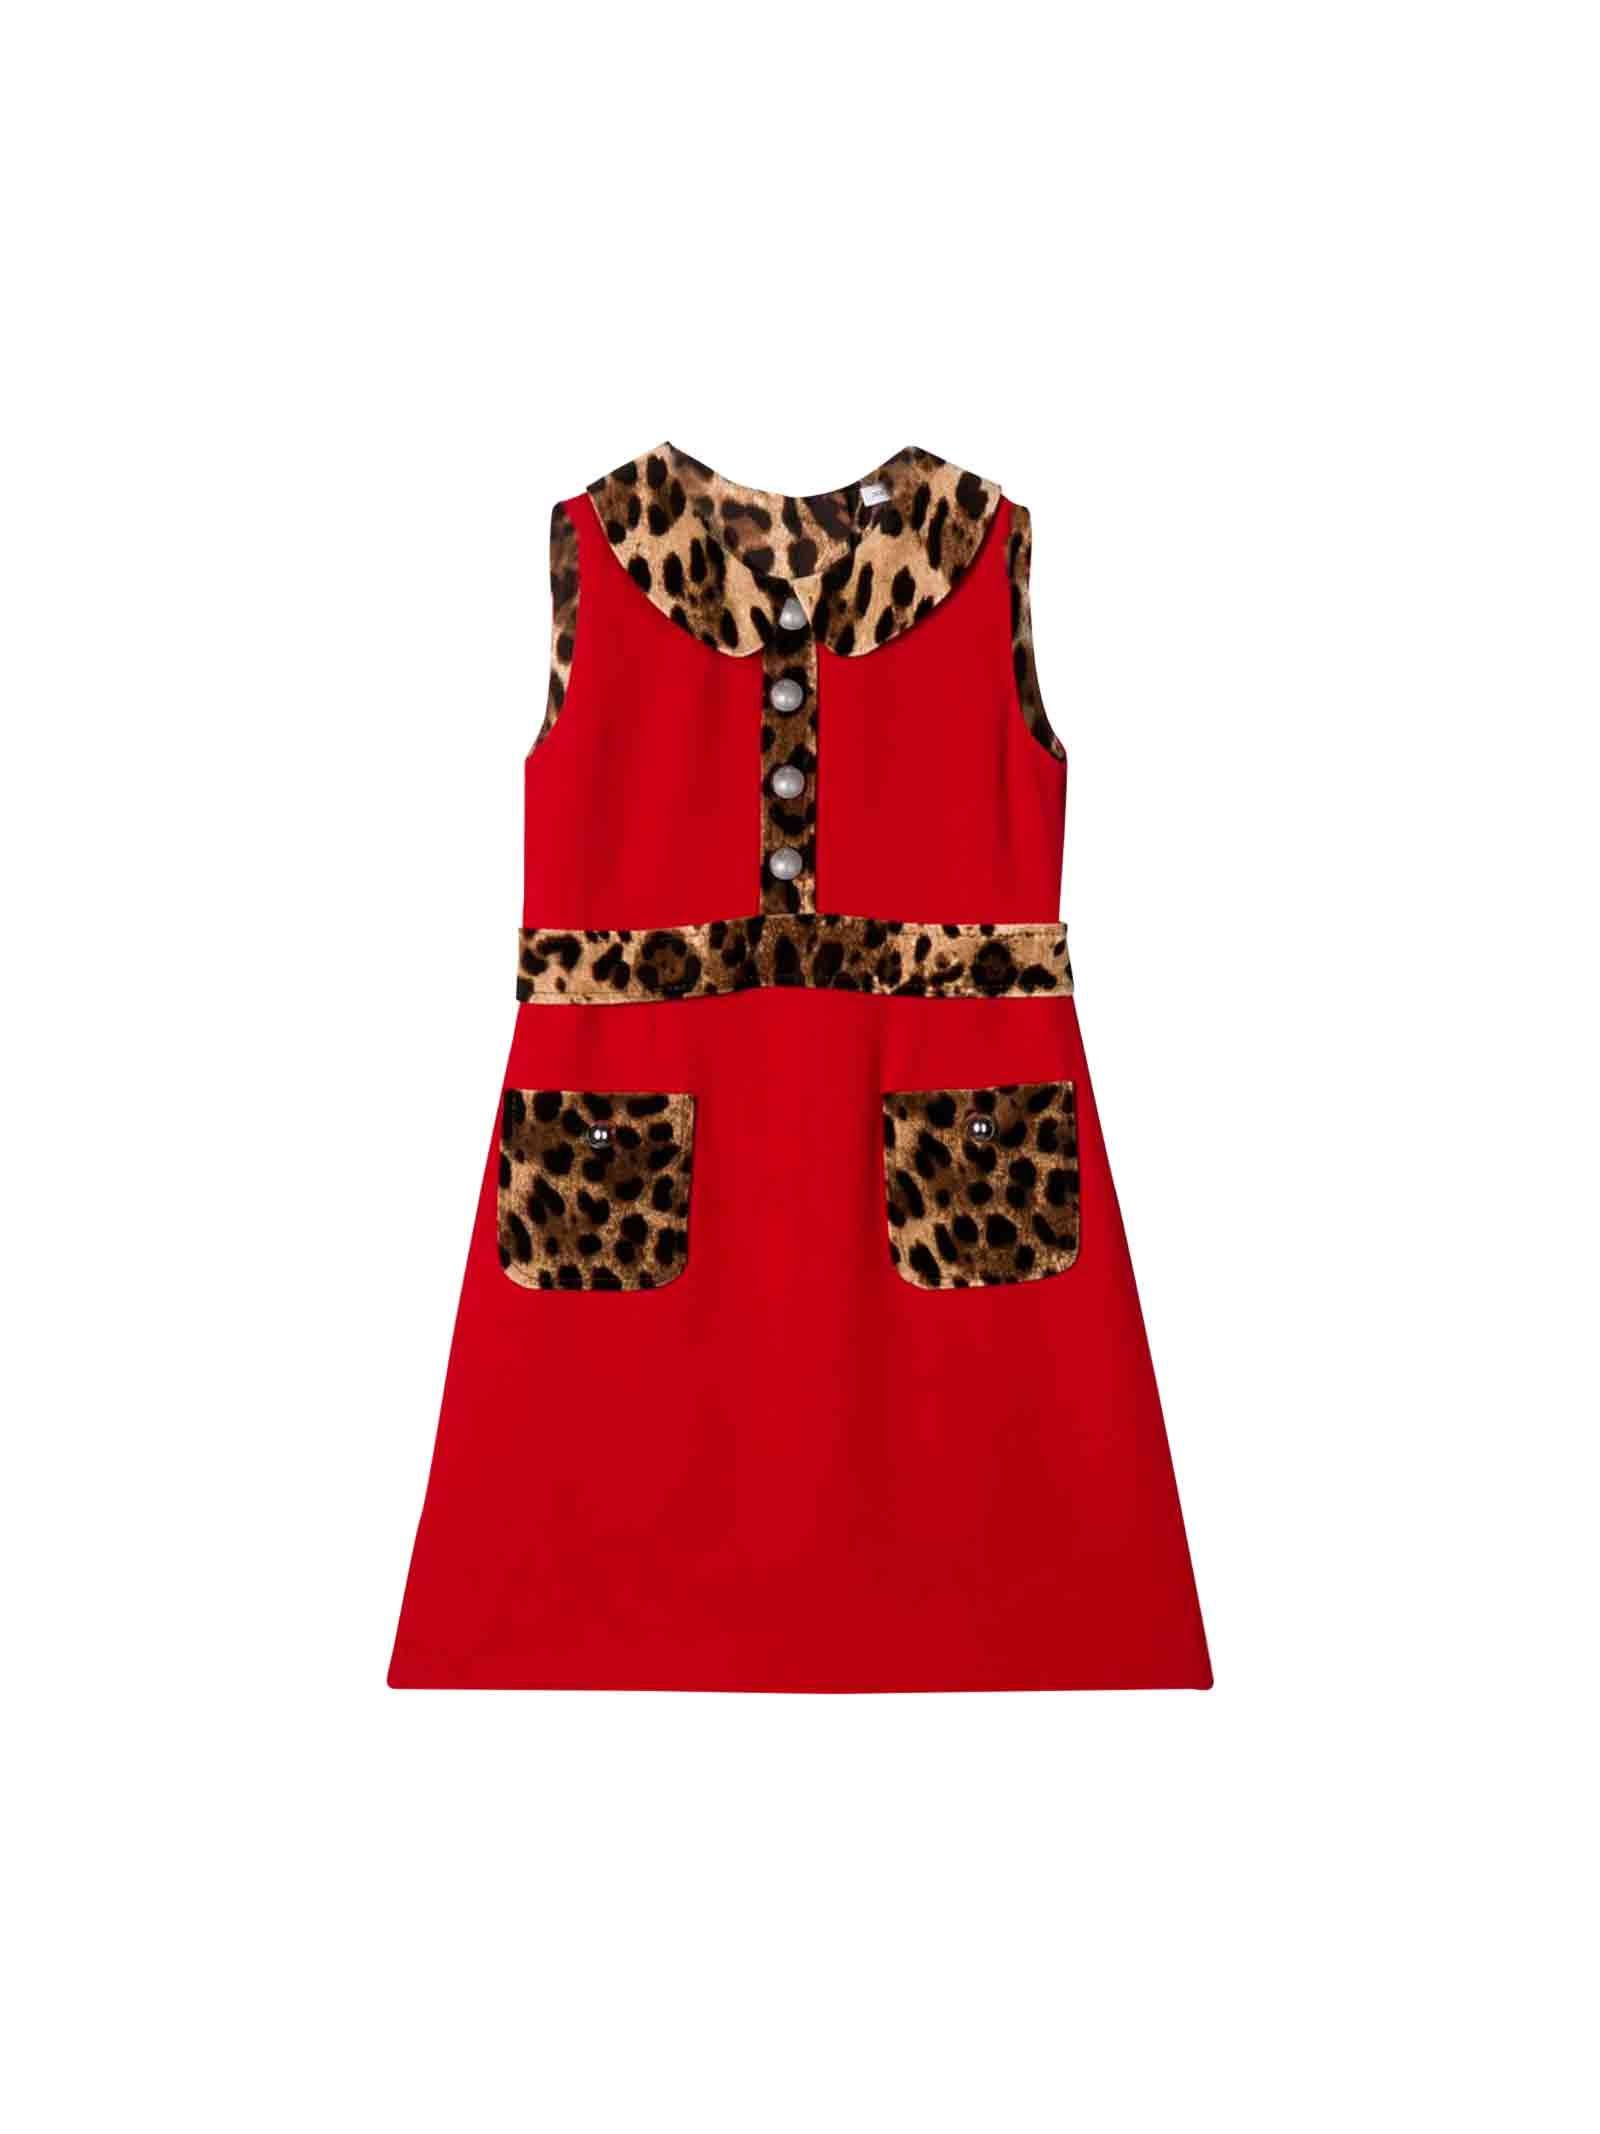 Dolce & Gabbana Red Girl Dress Dolce And Gabbana Kids